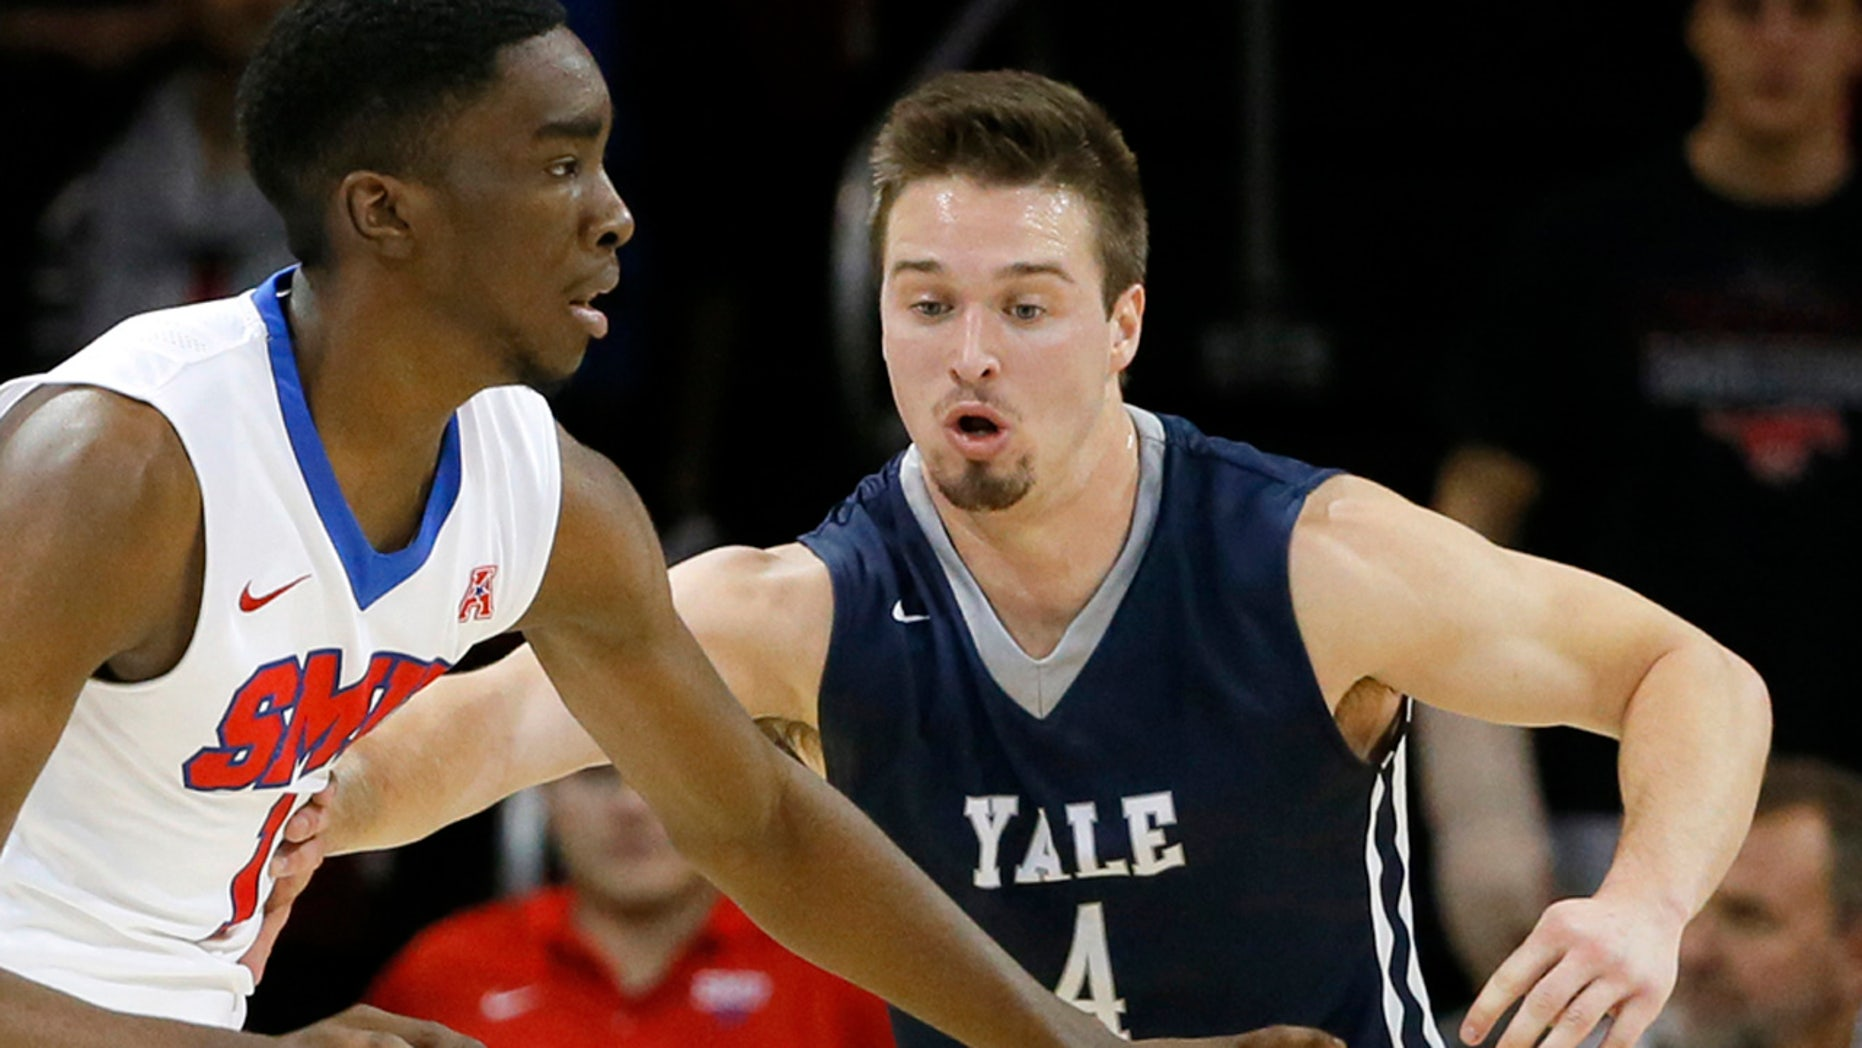 FILE - In this Nov. 22, 2015, file photo, Yale's Jack Montague, right, defends against SMU guard Shake Milton during an NCAA college basketball game in Dallas. (AP Photo/Tony Gutierrez, File)